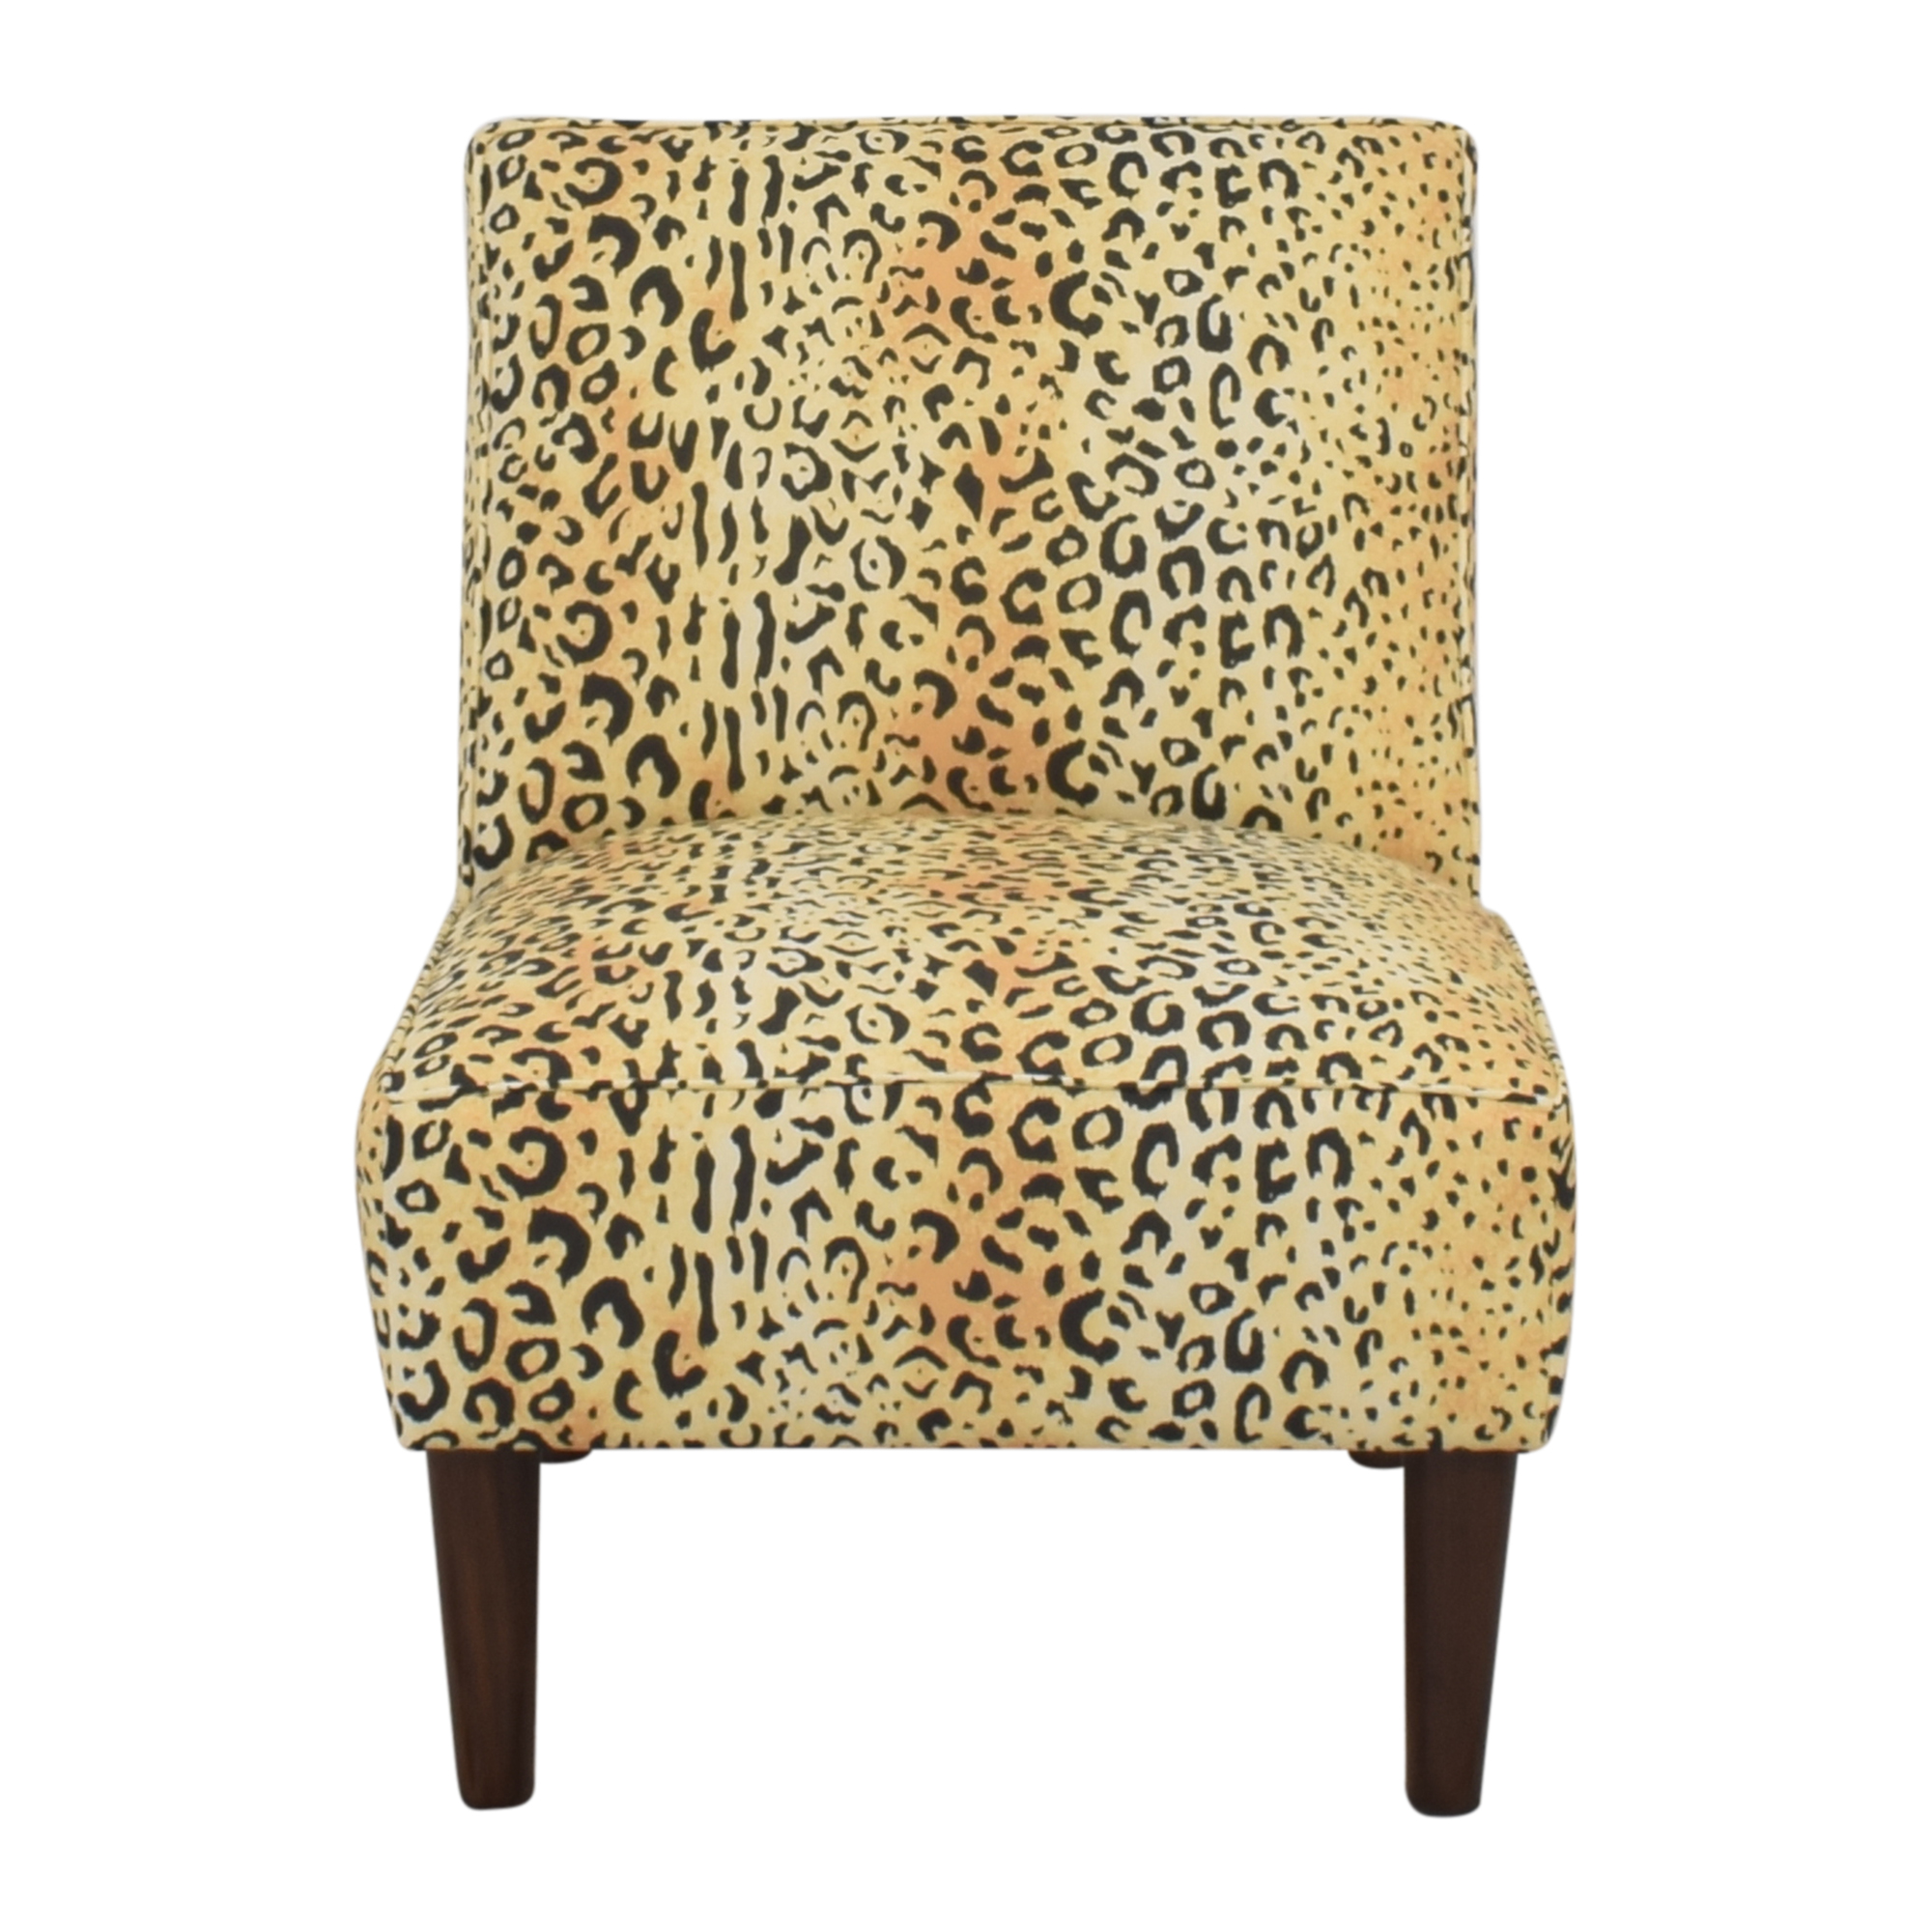 The Inside Slipper Chair / Chairs